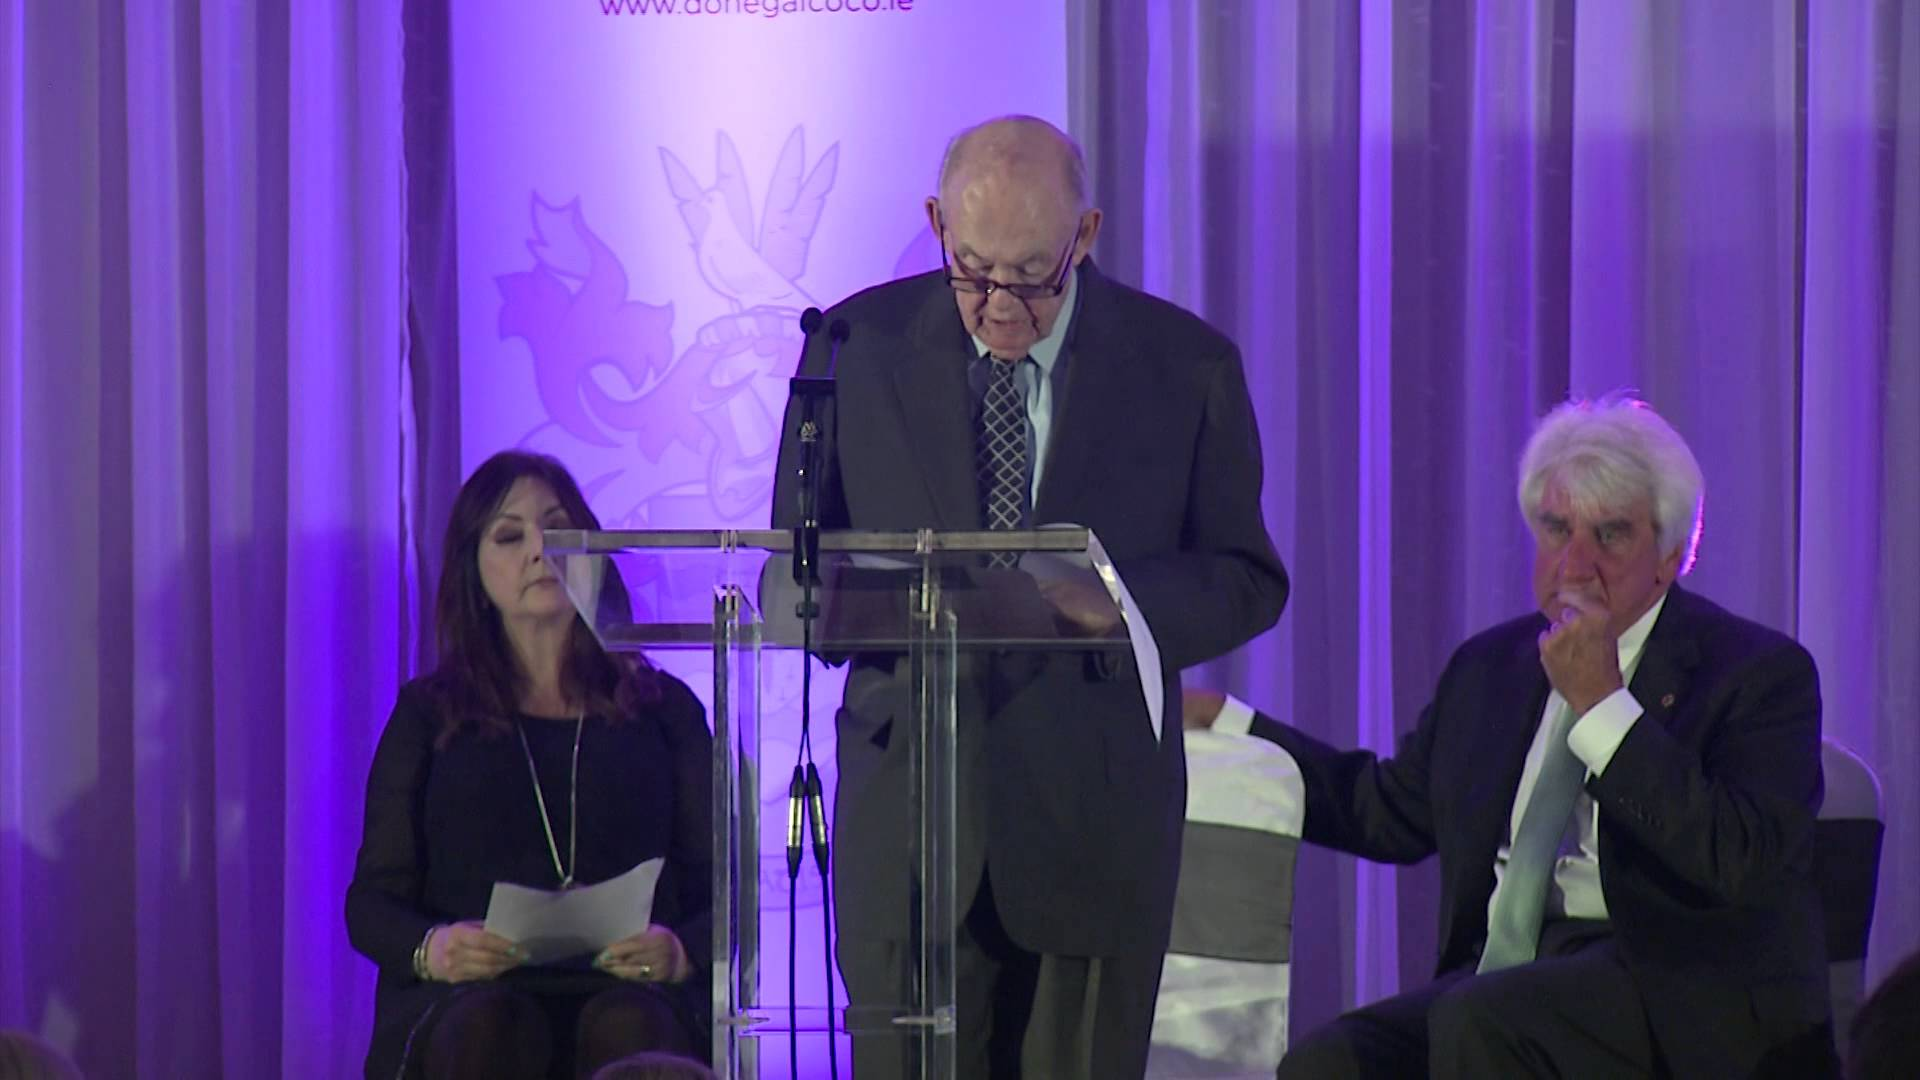 John-J-Sweeney-Speech-at-the-2014-Tip-ONeill-Irish-Diaspora-Awards